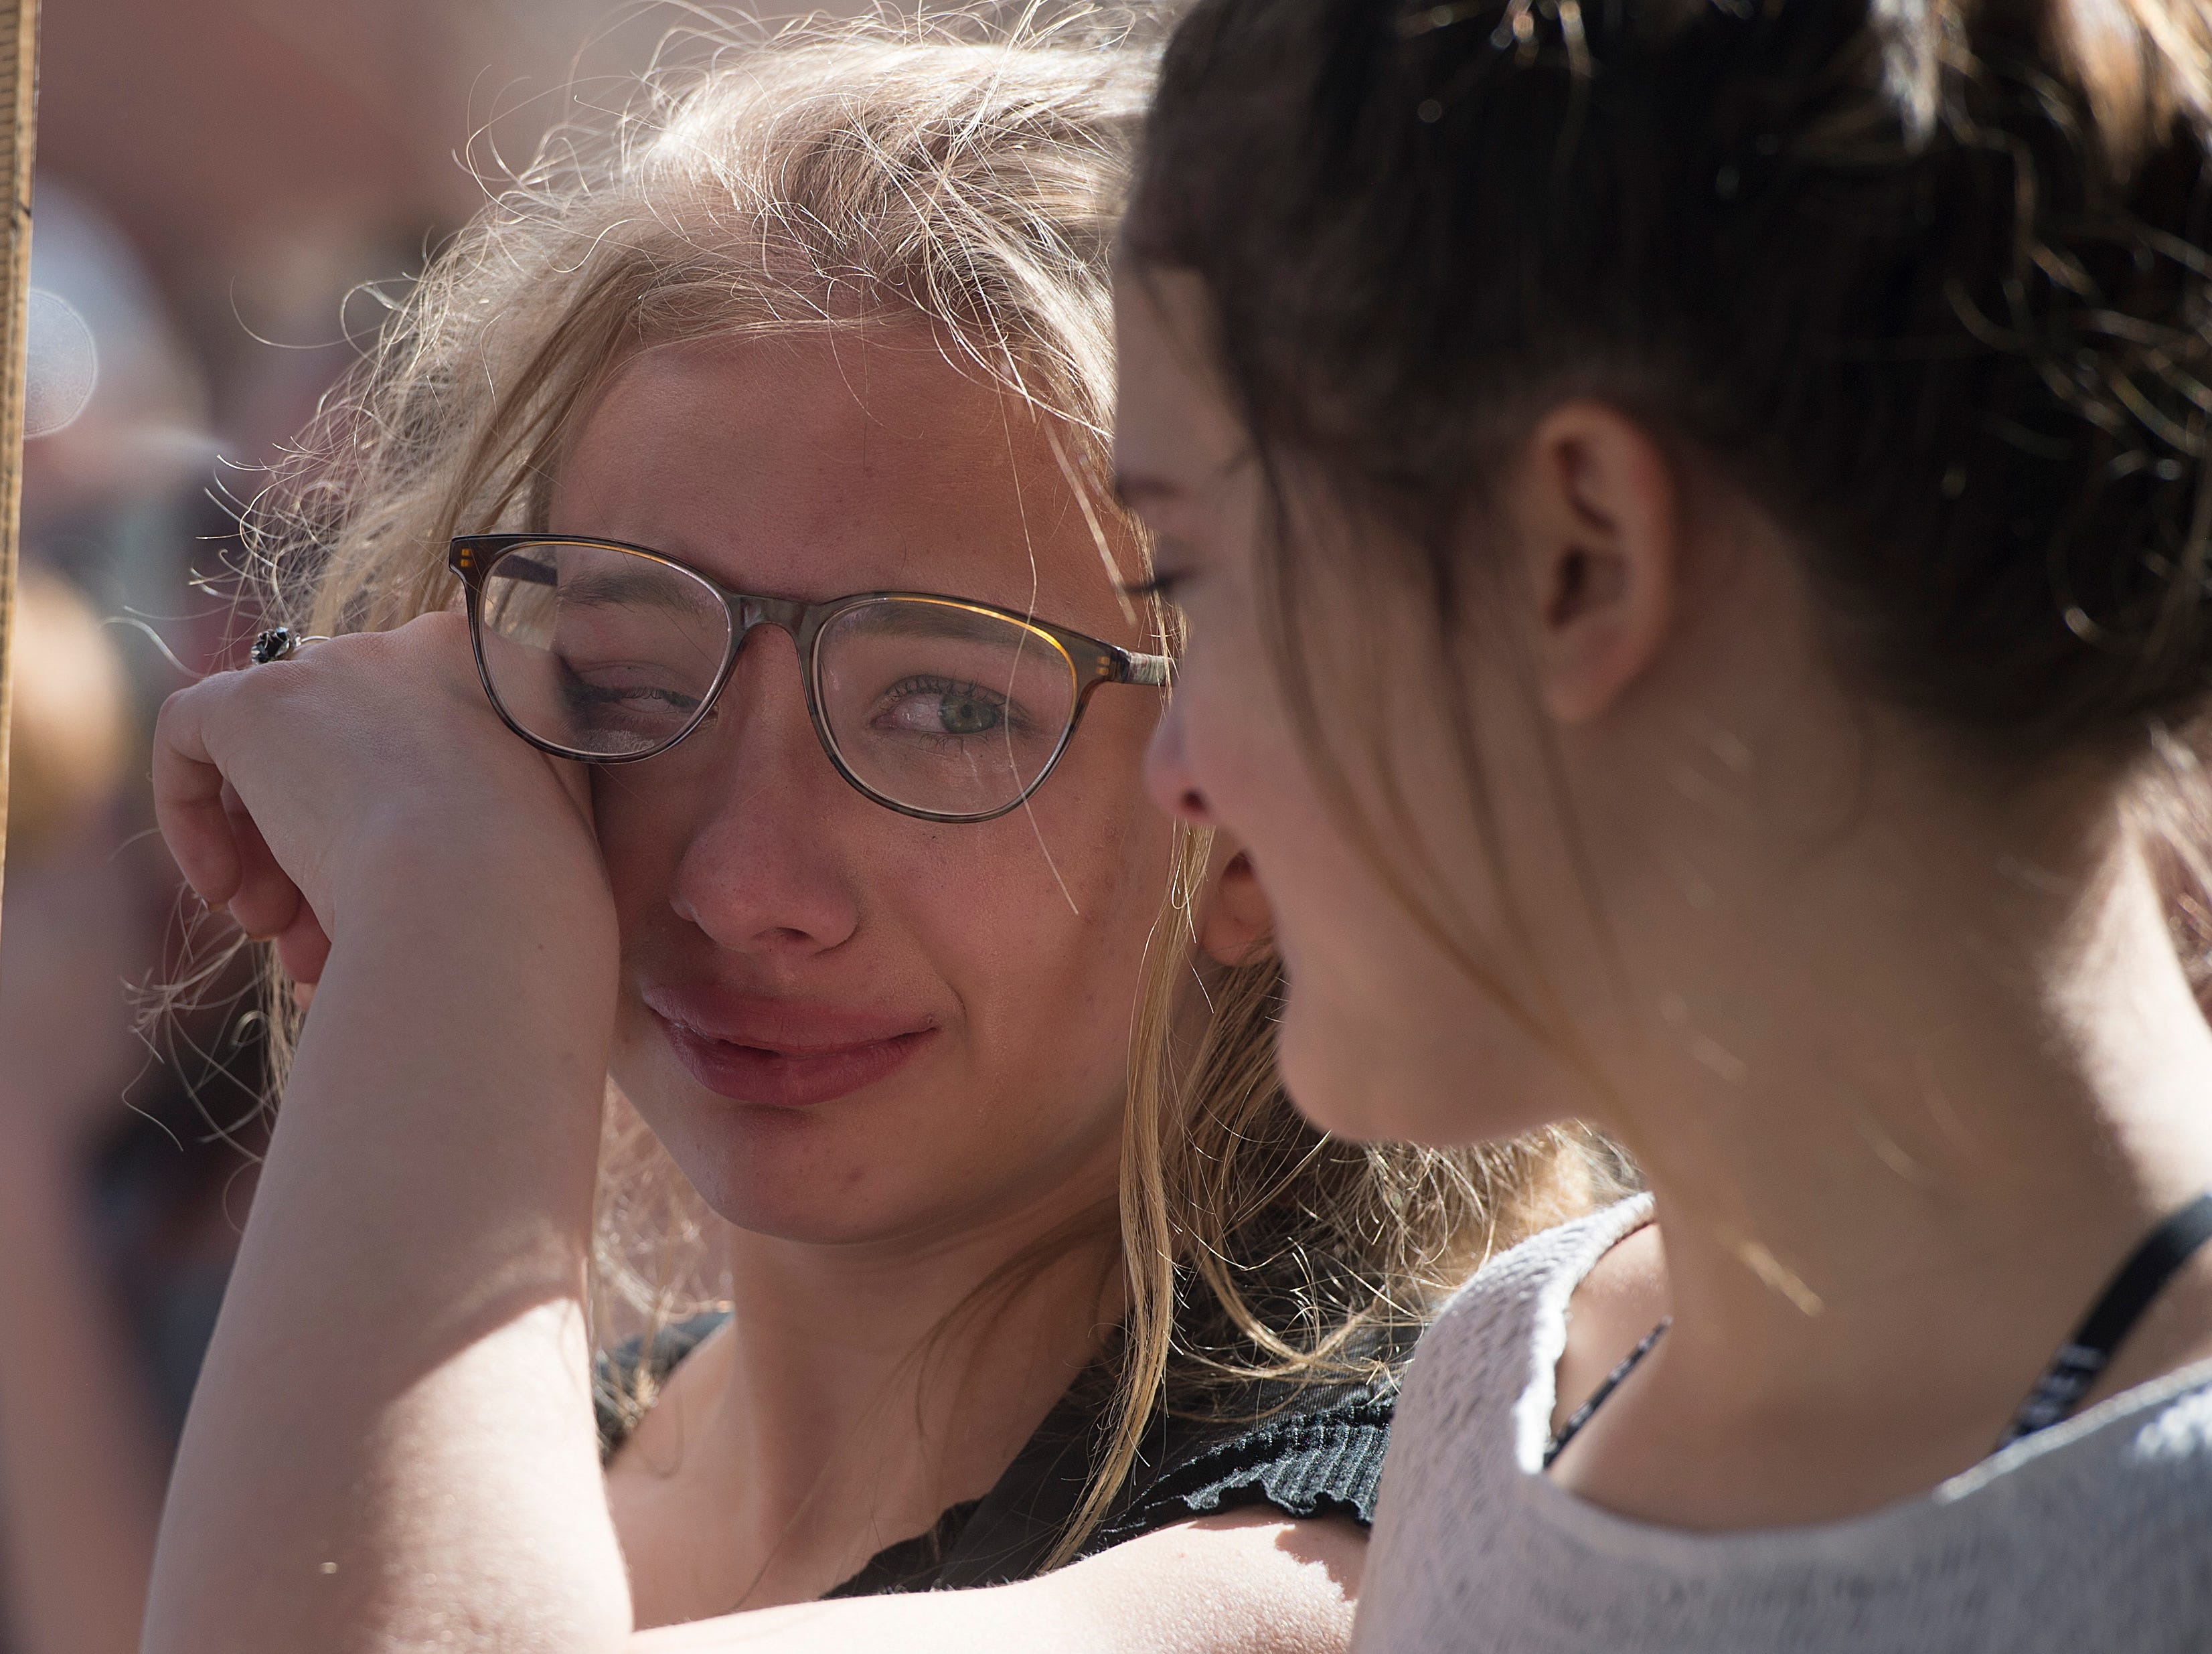 Bella Swanson, 13, wipes a tear away as she looks to her friend Bonnie Torres during a March for Our Lives event on Saturday, March 24, 2018. The gathering was a part of the national movement following the Parkland, Florida shooting last month.